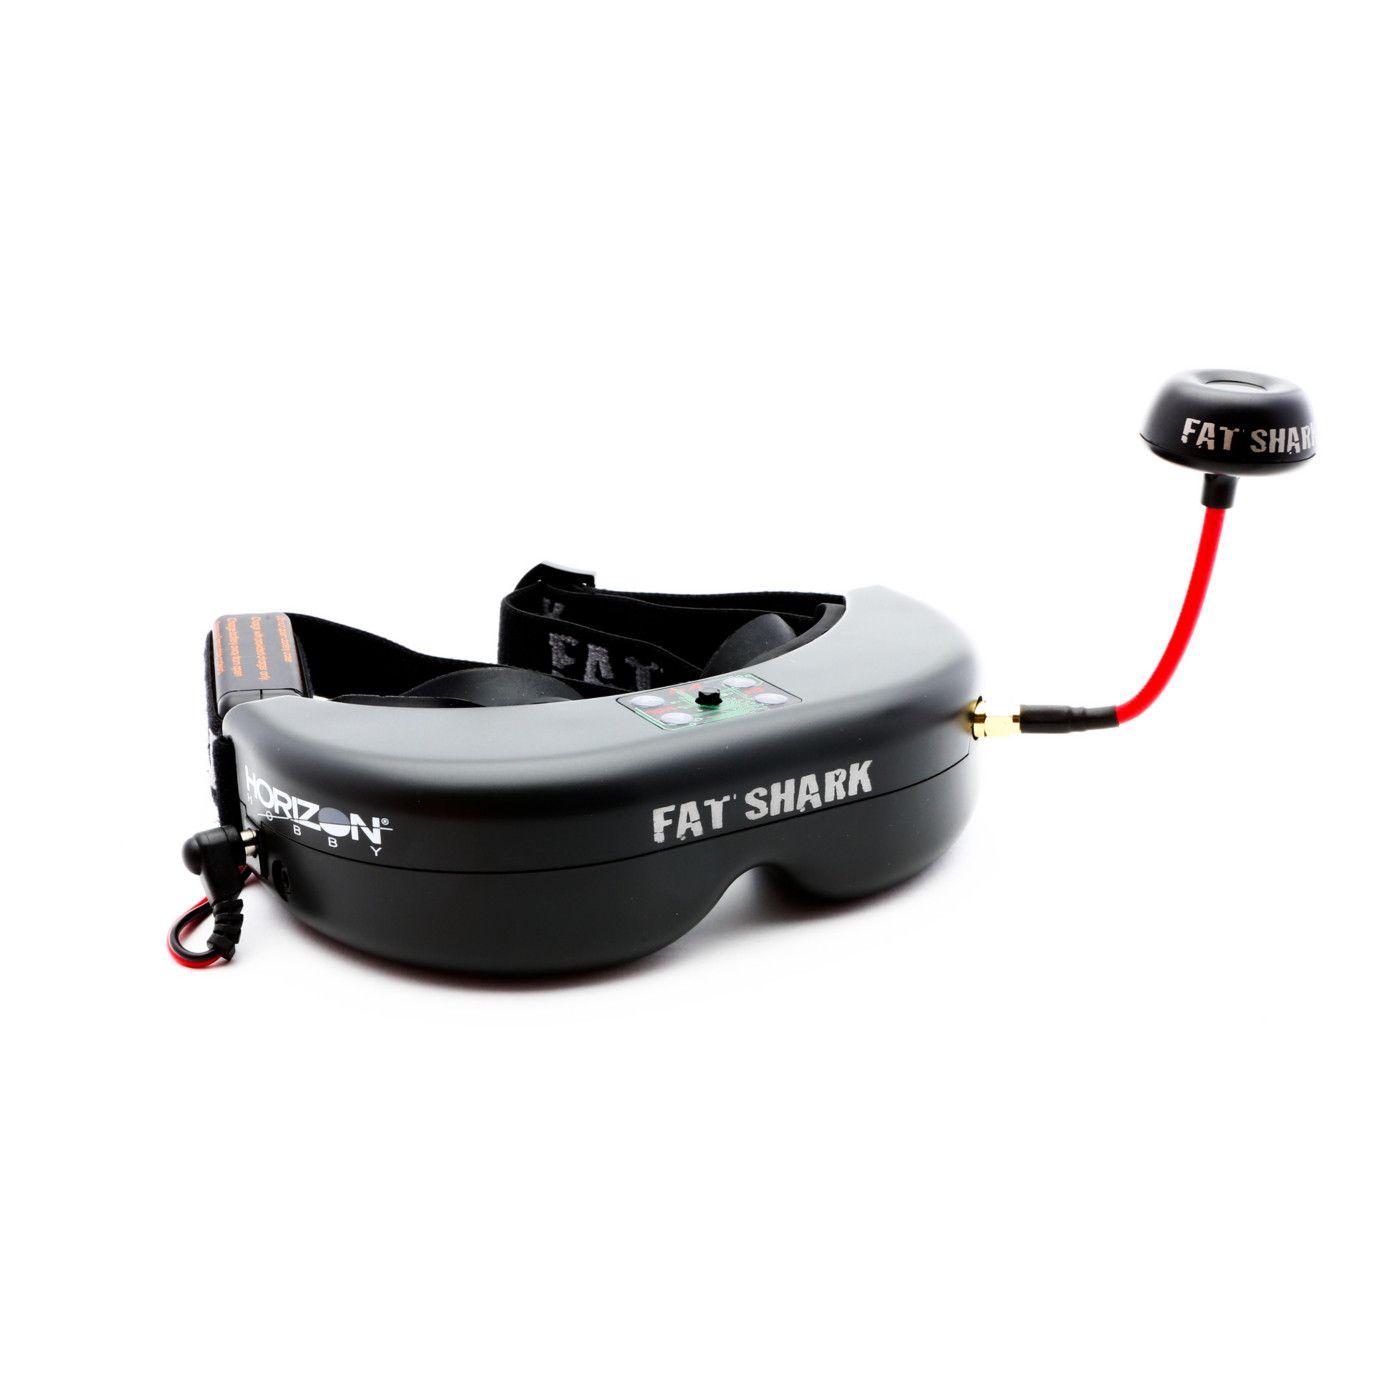 Teleporter V4 Video Headset with Head Tracking